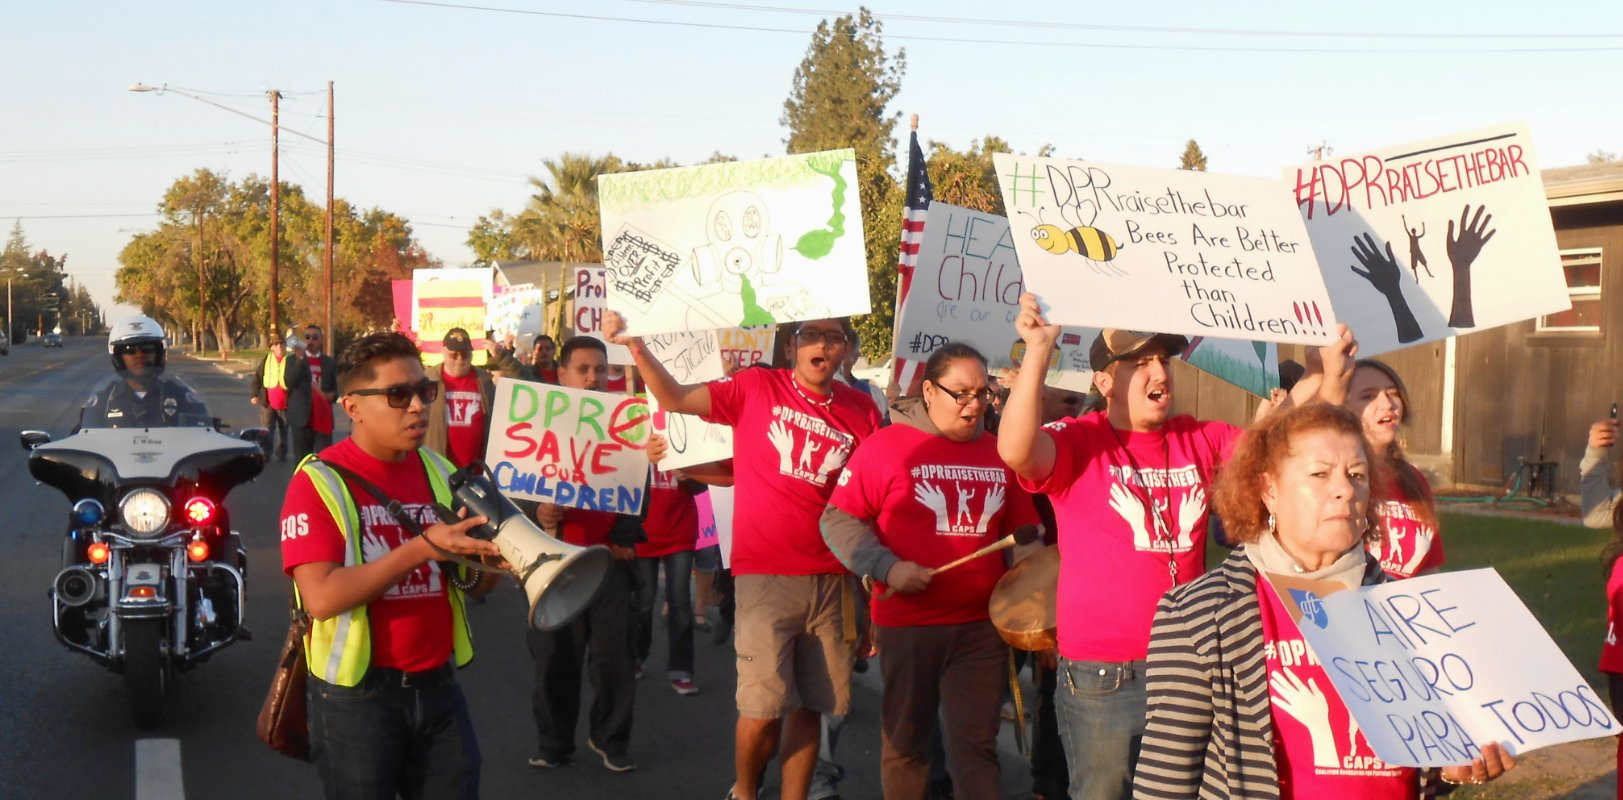 he CAPS' march in the city of Tulare, CA in 2016. The march was from a local park to the memorial hall building where California's Department of Pesticide Regulation was scheduled to host one of its statewide workshops to hear from the community on school buffer zones. (Photo courtesy of Ángel García)